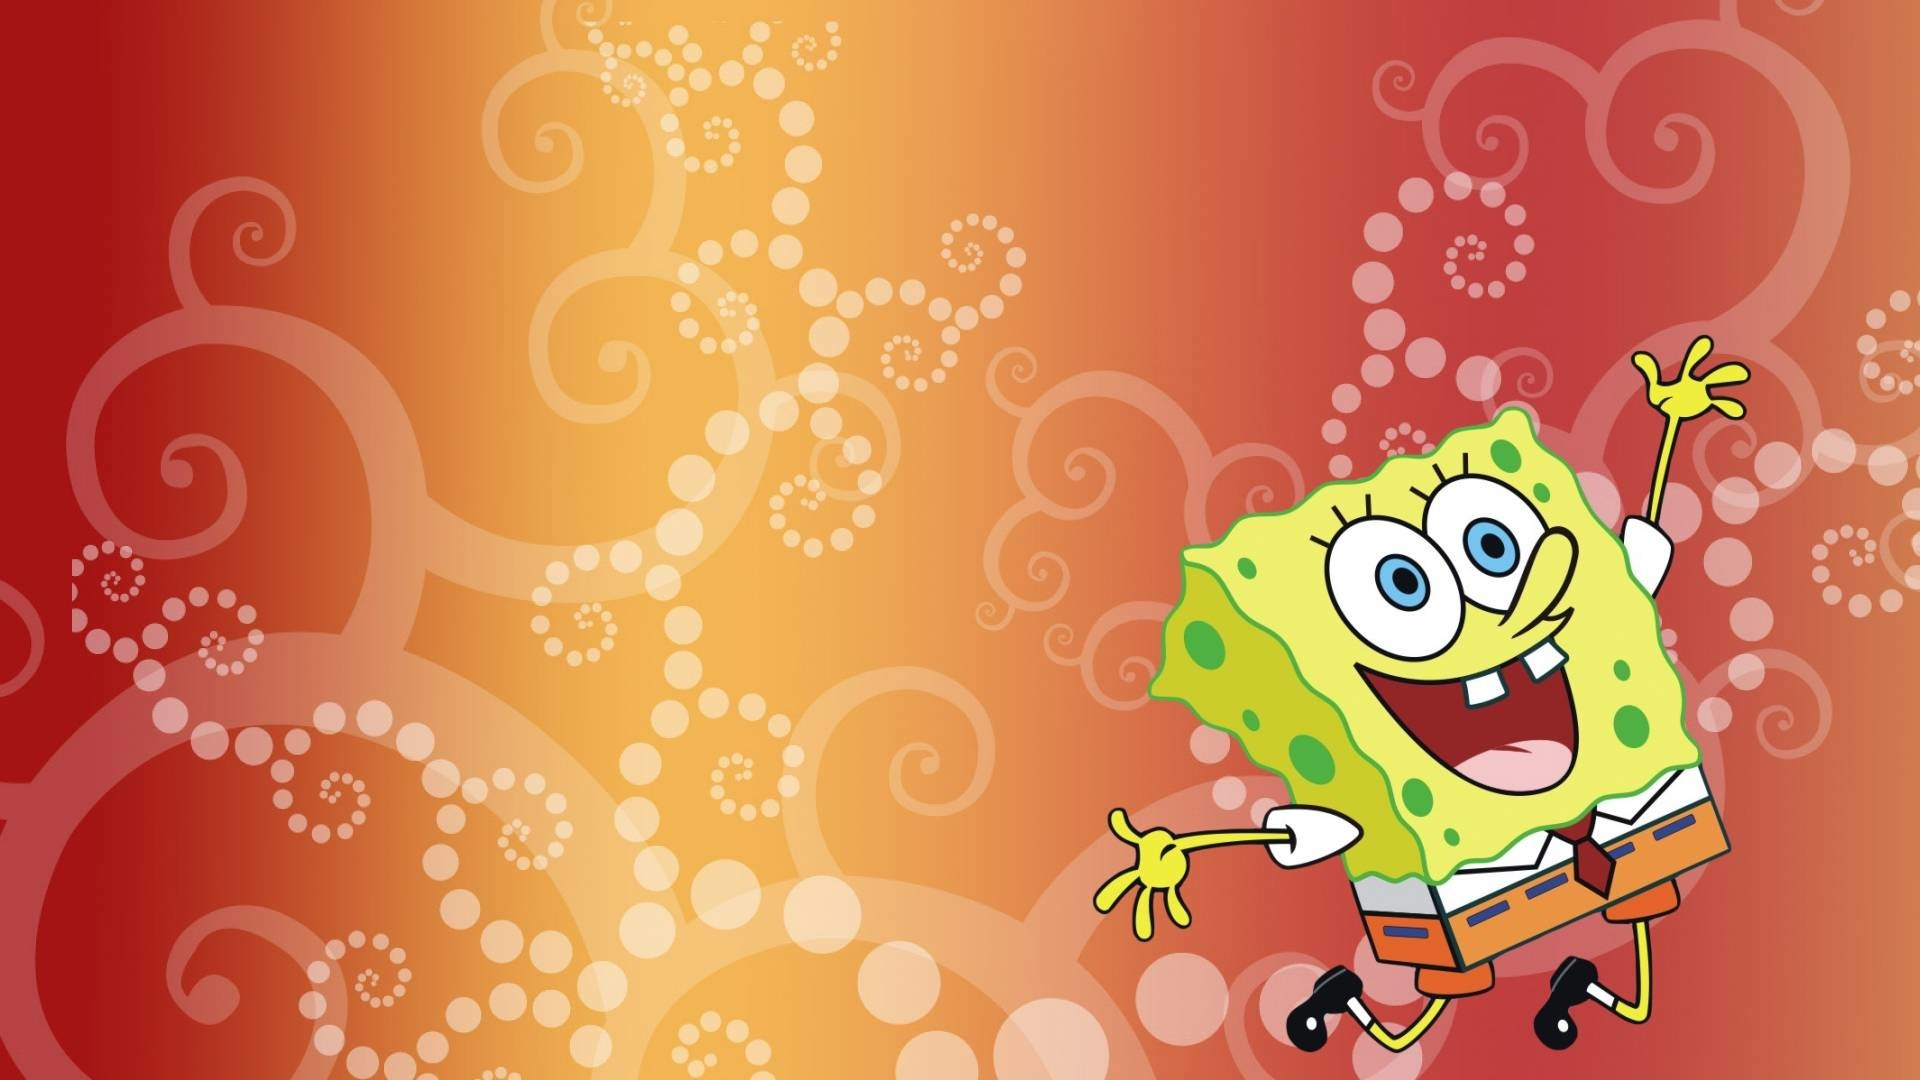 1920x1080 Cool Spongebob wallpaper - SpongeBoB Square Pants Wallpaper